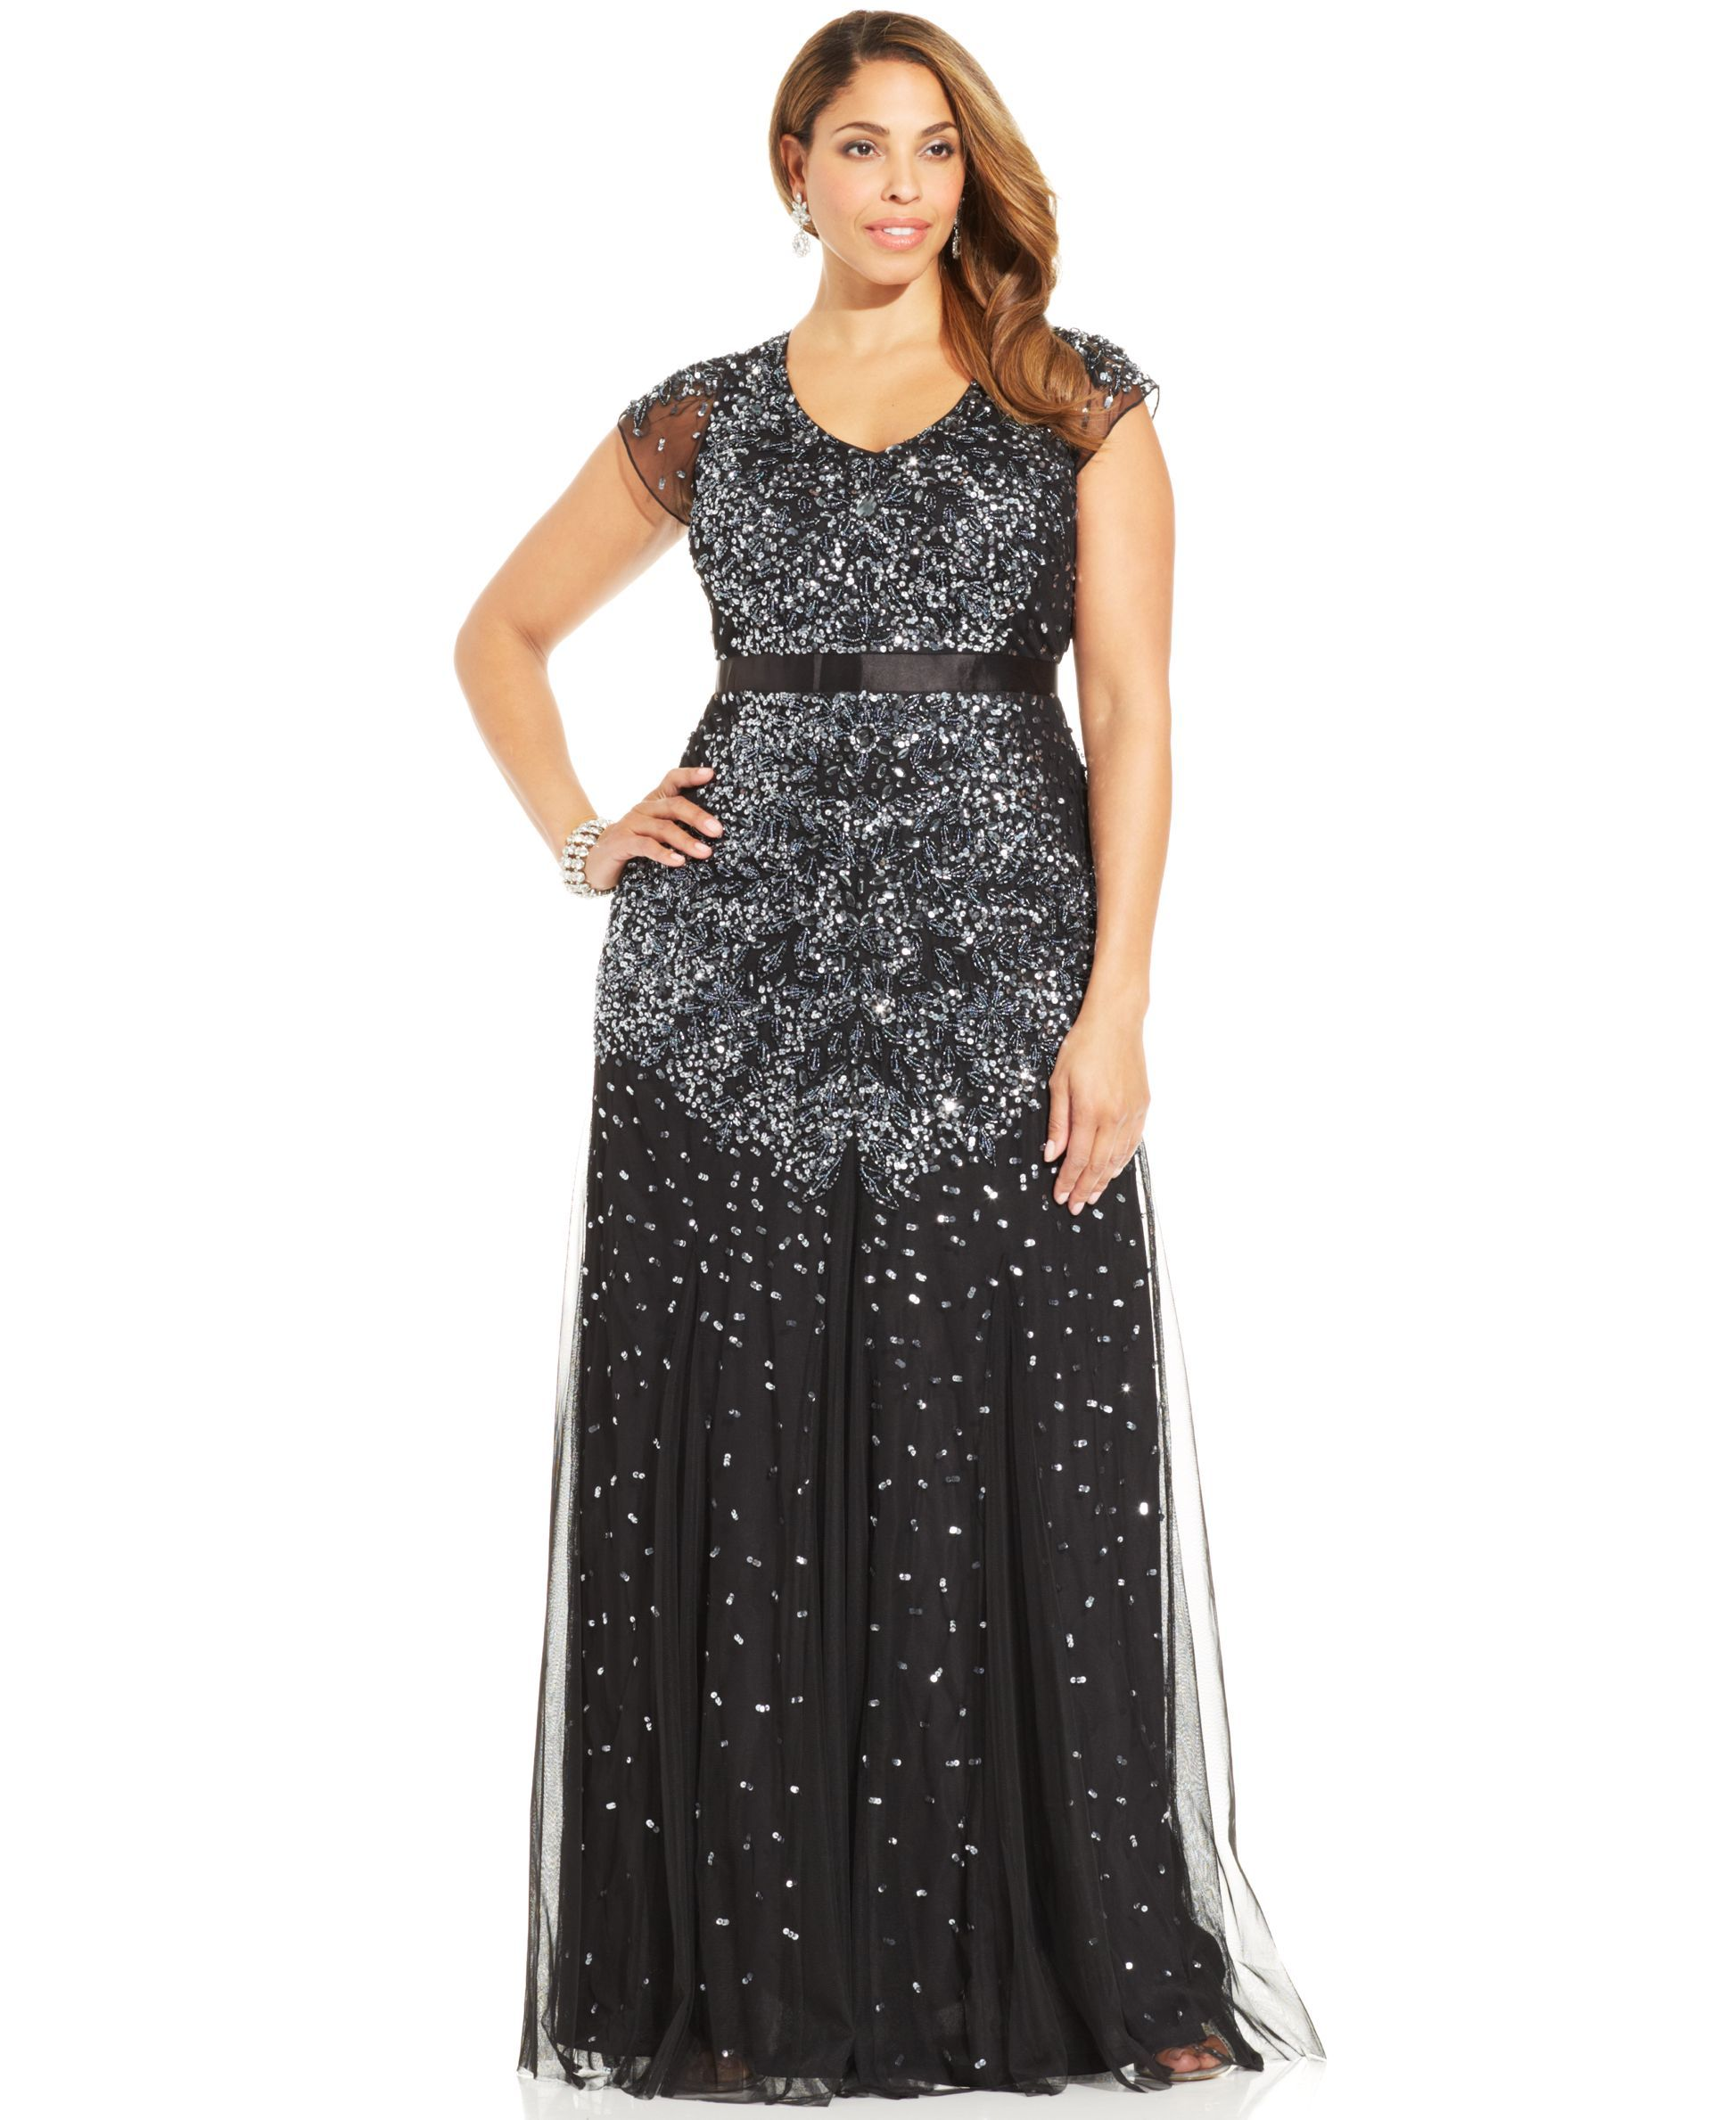 0a3d51673 Adrianna Papell Plus Size Cap-Sleeve Embellished Gown - Dresses - Plus Sizes  - Macy's